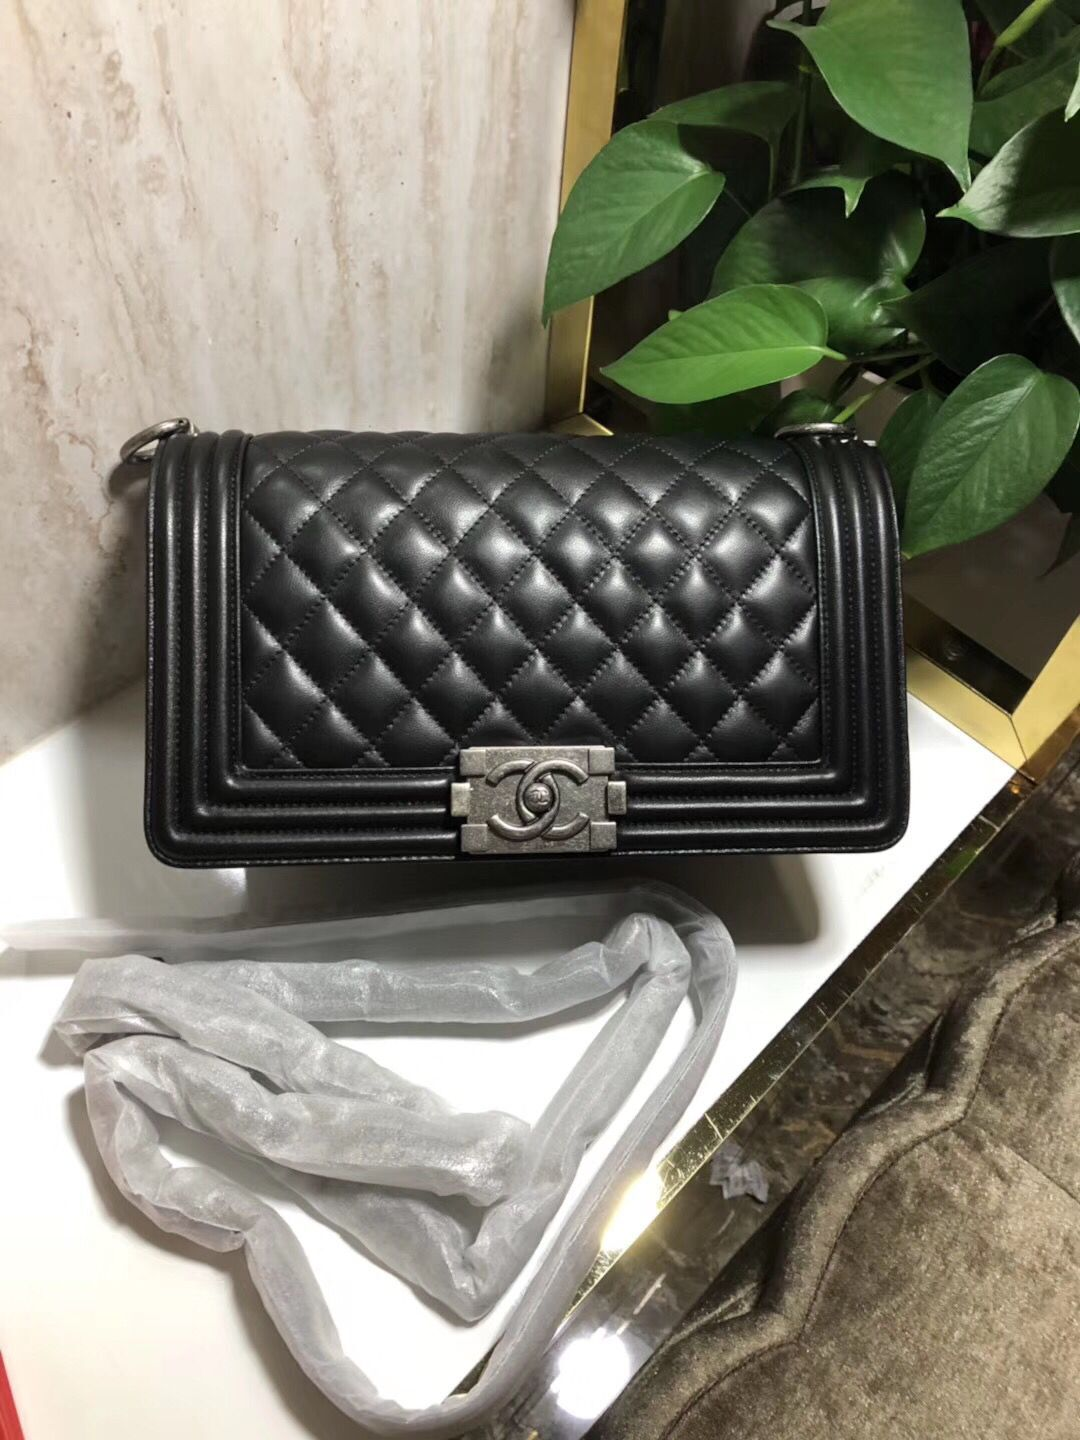 Chanel Boy Flap Original Sheepskin Leather Shoulder Black Bag A67086 Silver